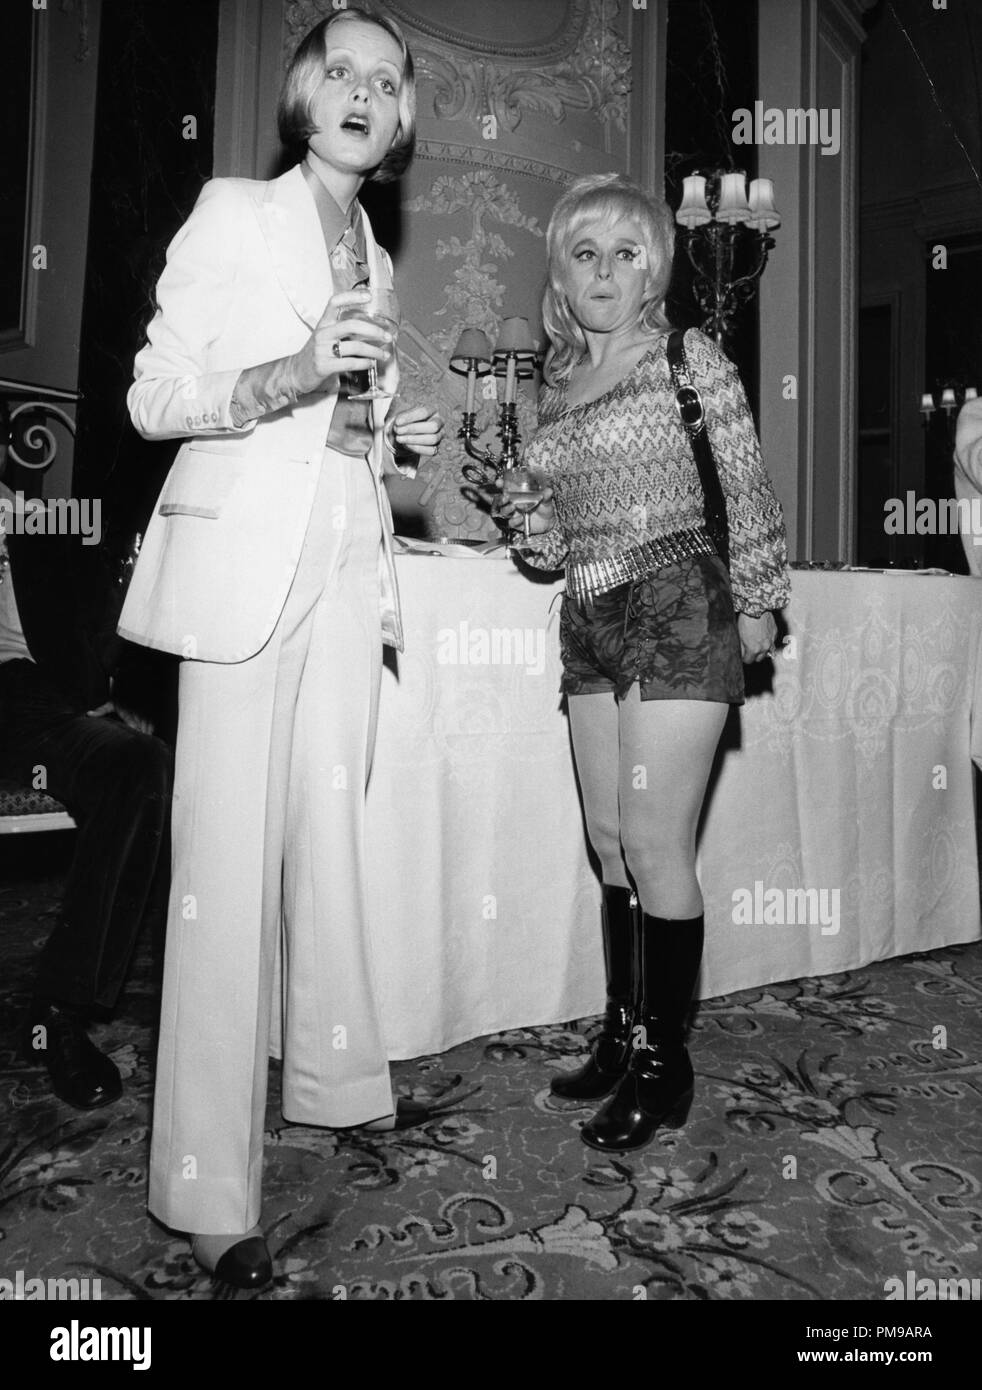 Actress Barbara Windsor High Resolution Stock Photography And Images Alamy